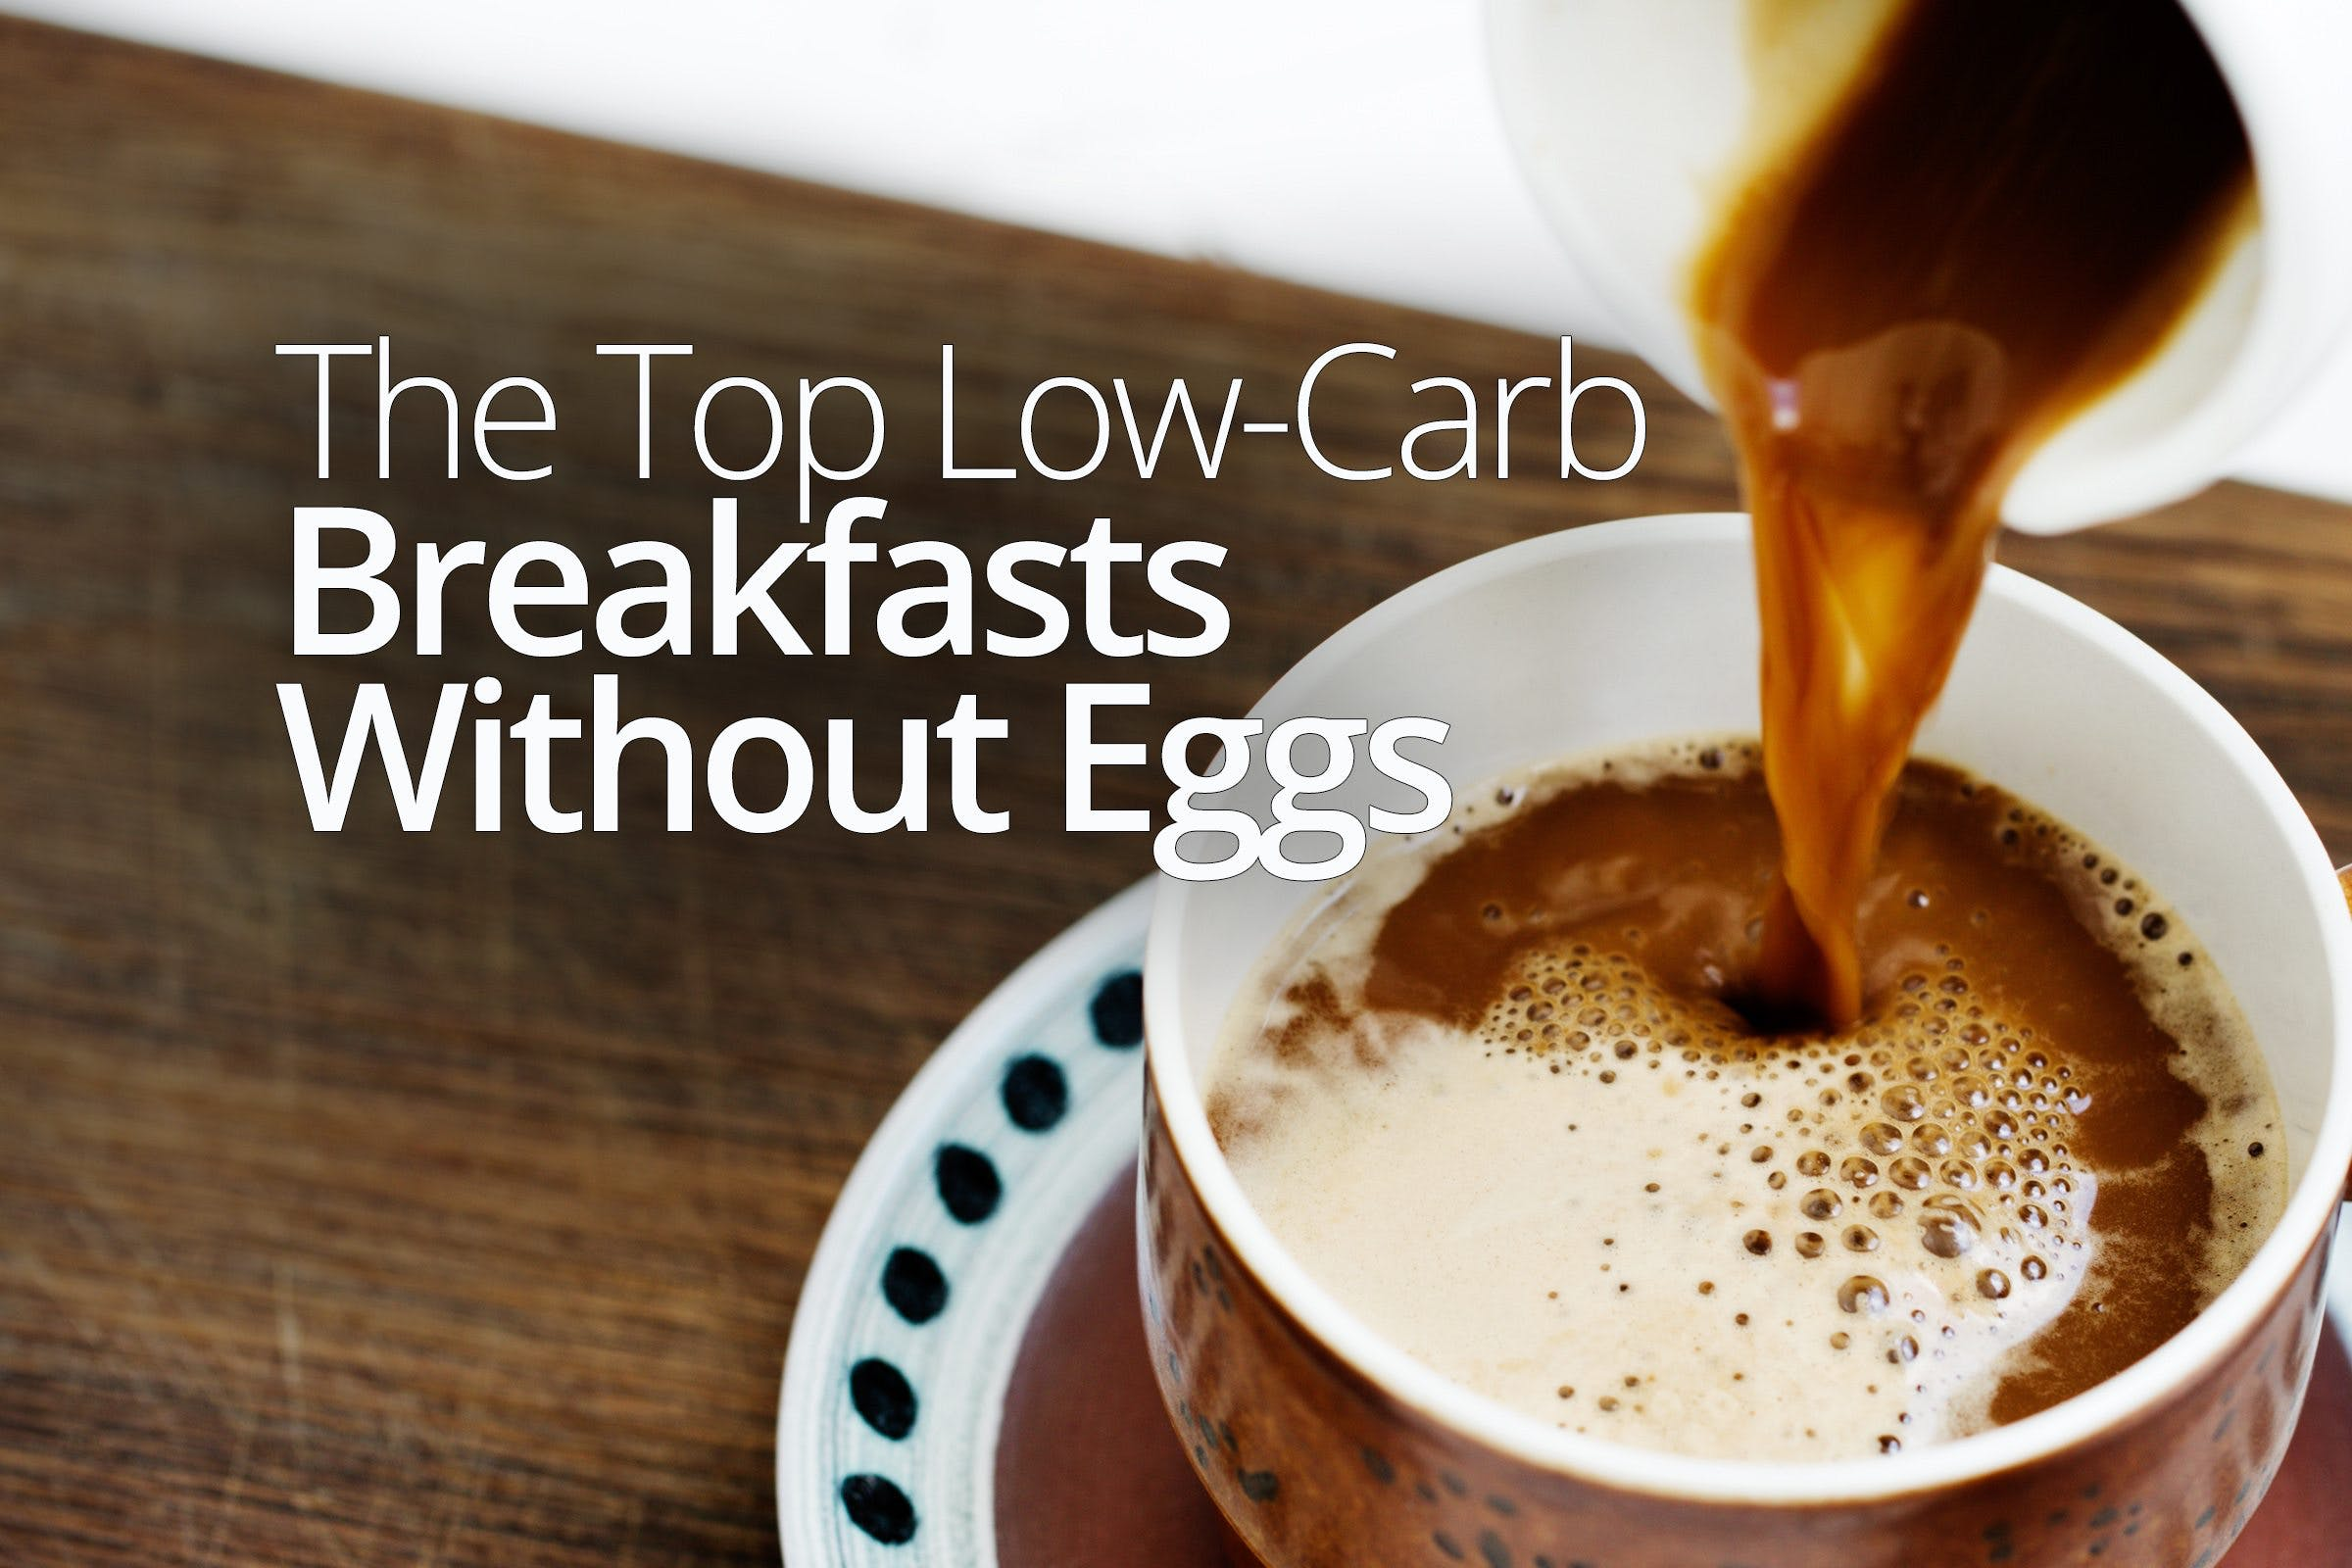 Low-carb and keto breakfasts without eggs